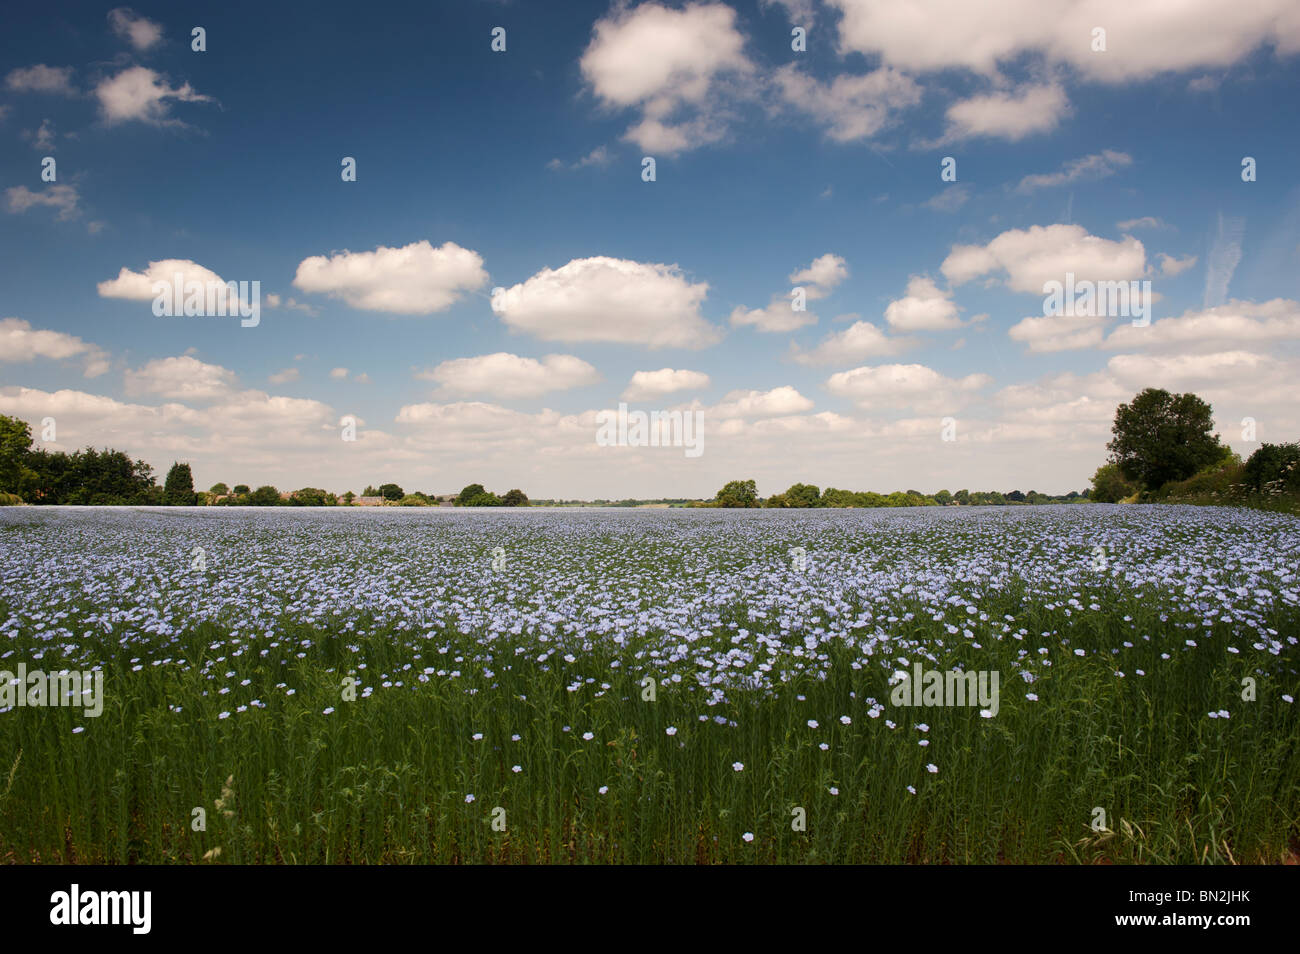 Linum usitatissimum. Linseed crop flowering in a field in the English countryside - Stock Image